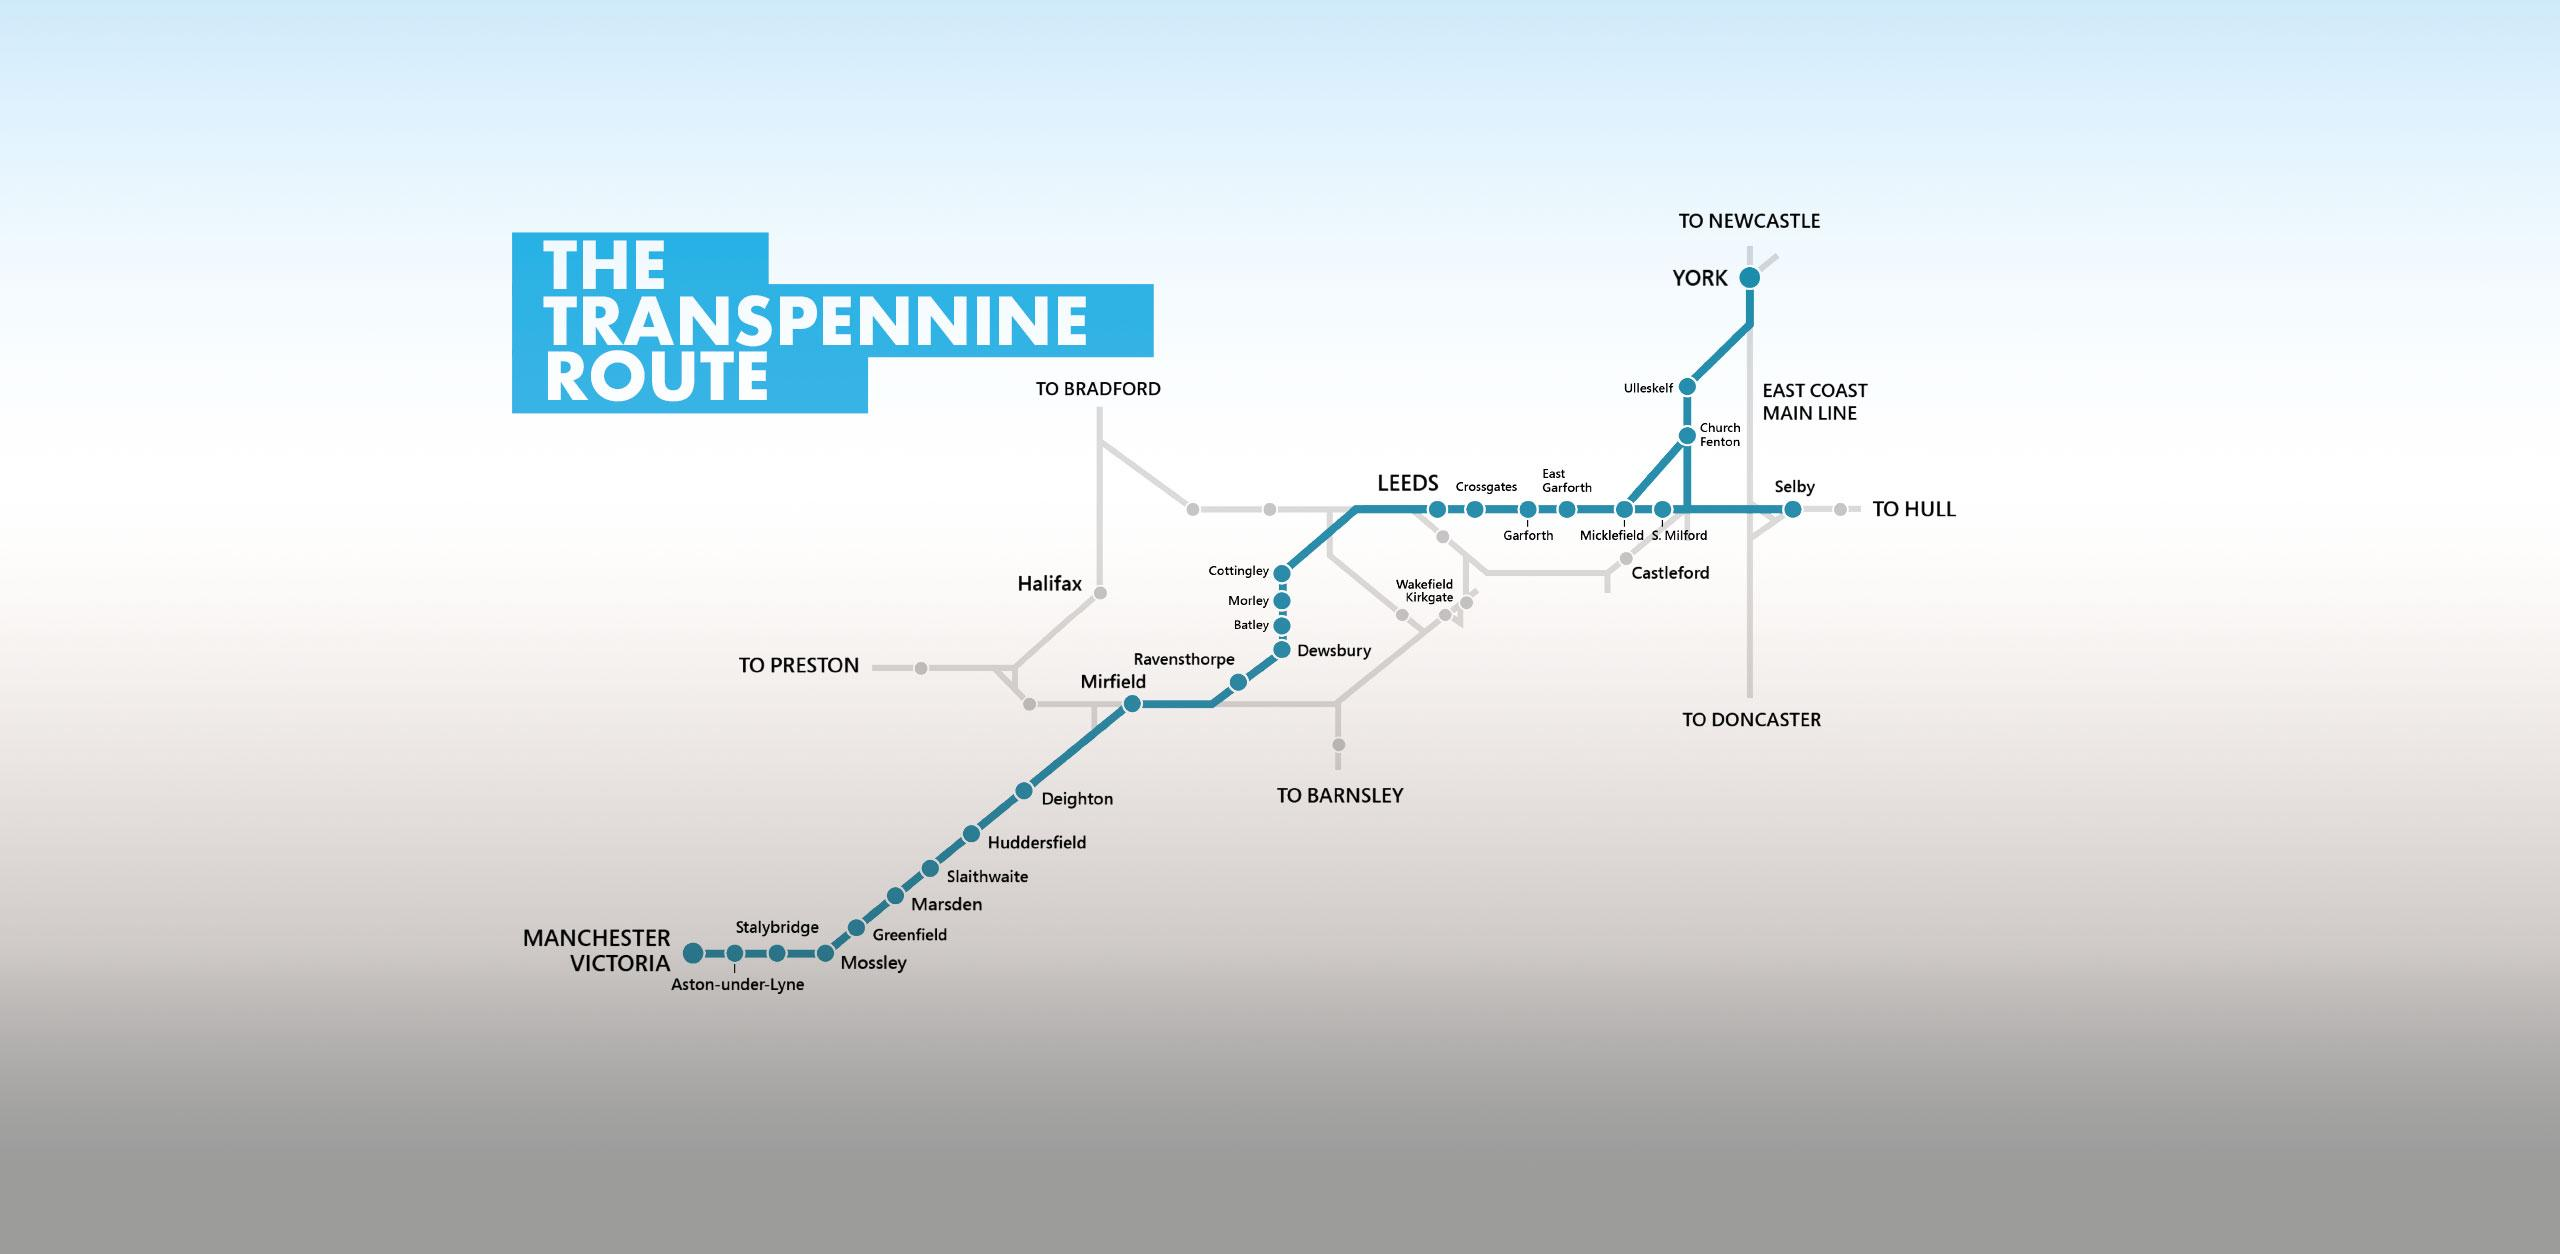 The Transpennine Route from Manchester to York